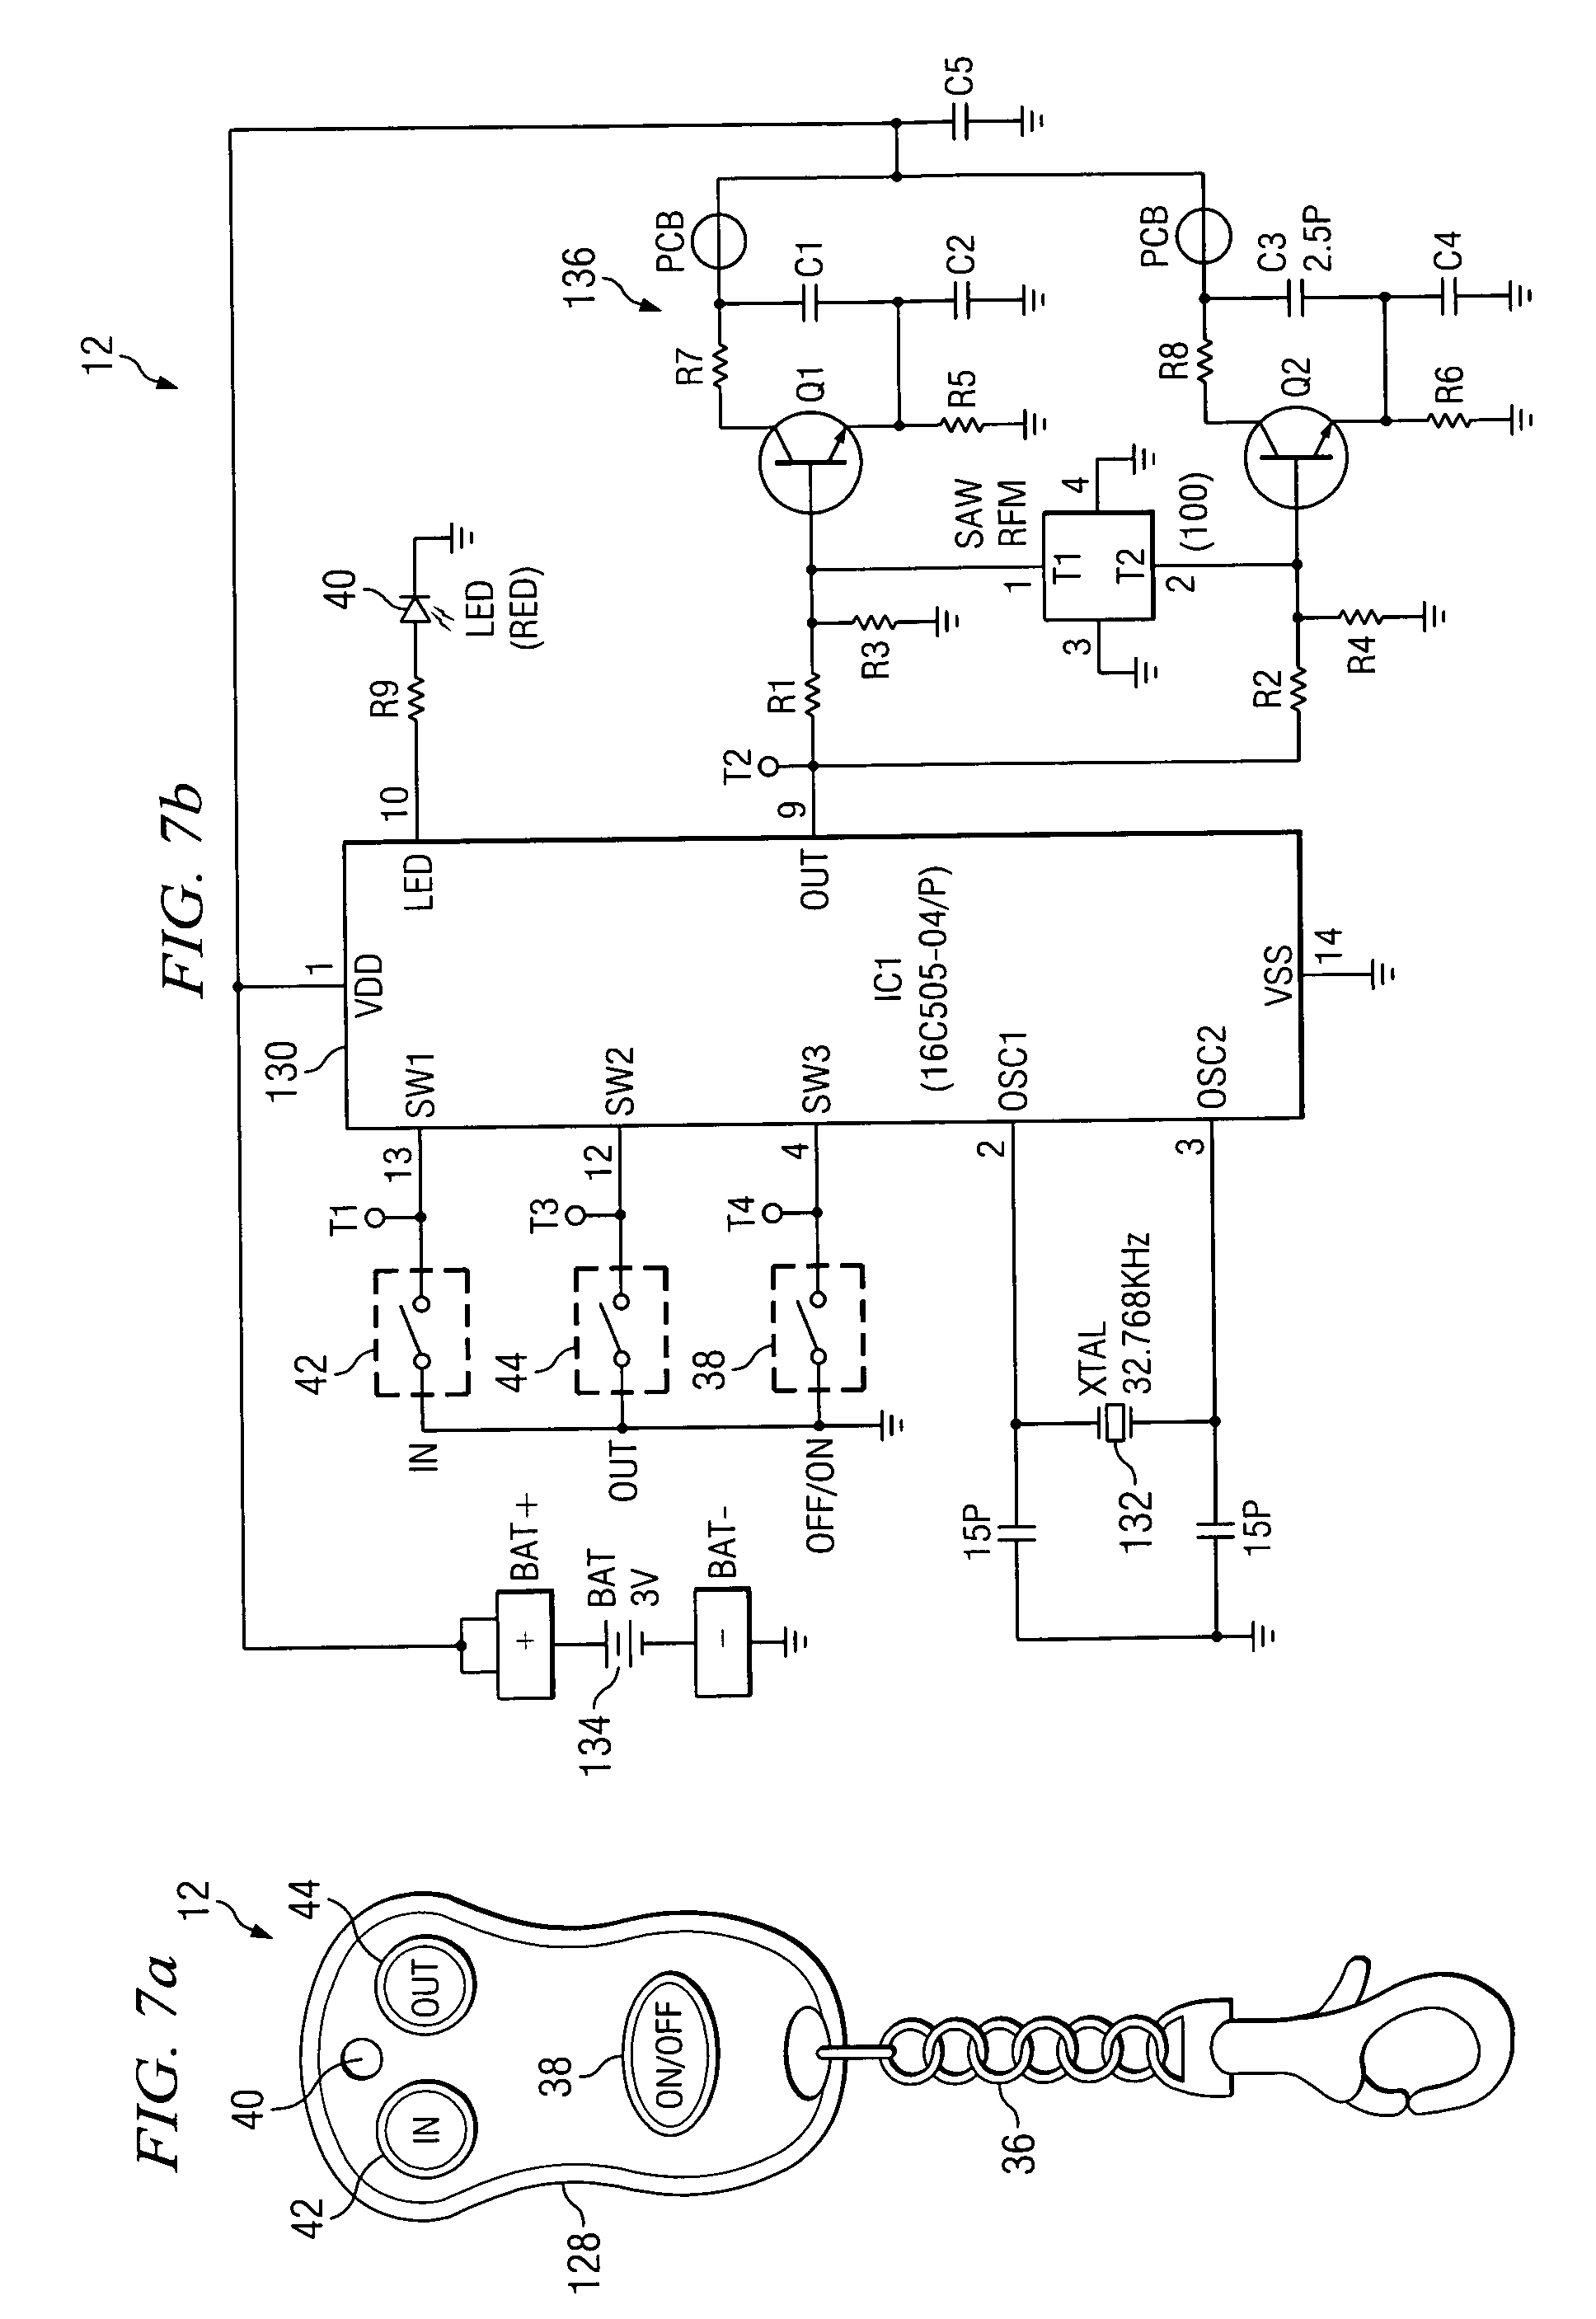 Miraculous Remote Winch Control Wiring Diagram Wiring Diagram Badland Wiring Digital Resources Funapmognl